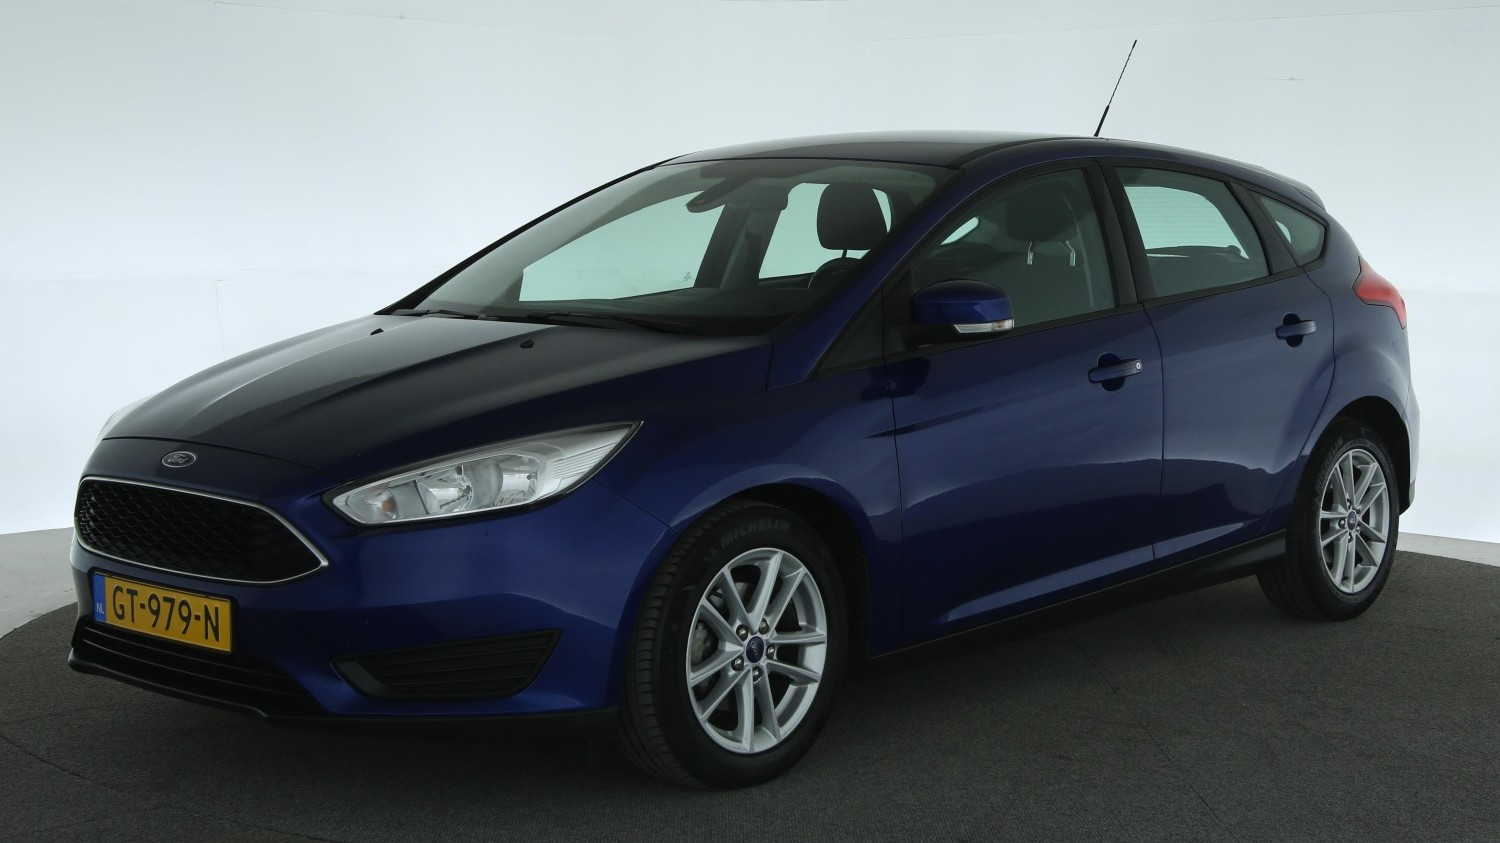 Ford Focus Hatchback 2015 GT-979-N 1